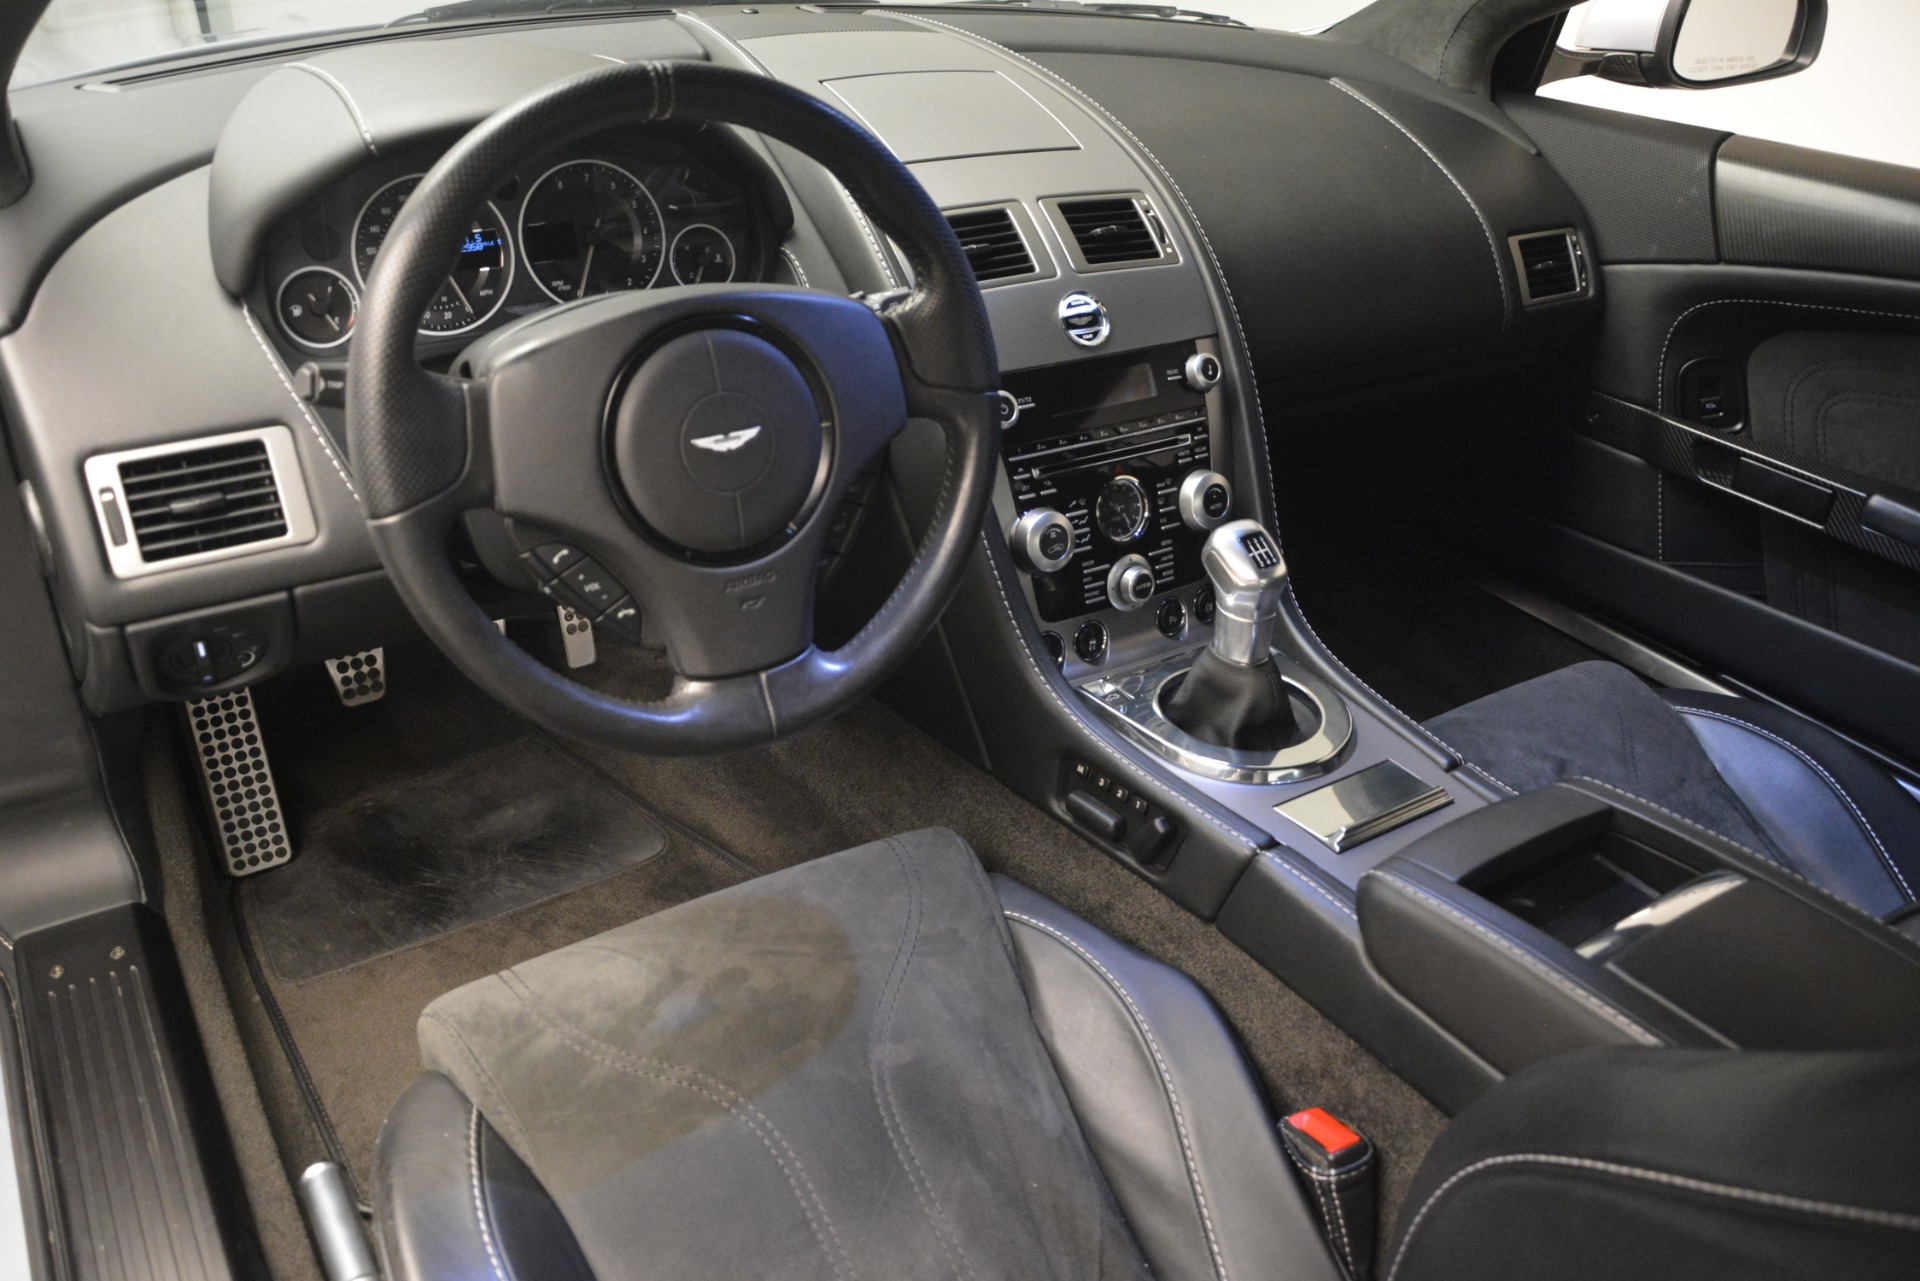 Used 2009 Aston Martin DBS Coupe For Sale In Westport, CT 3033_p18